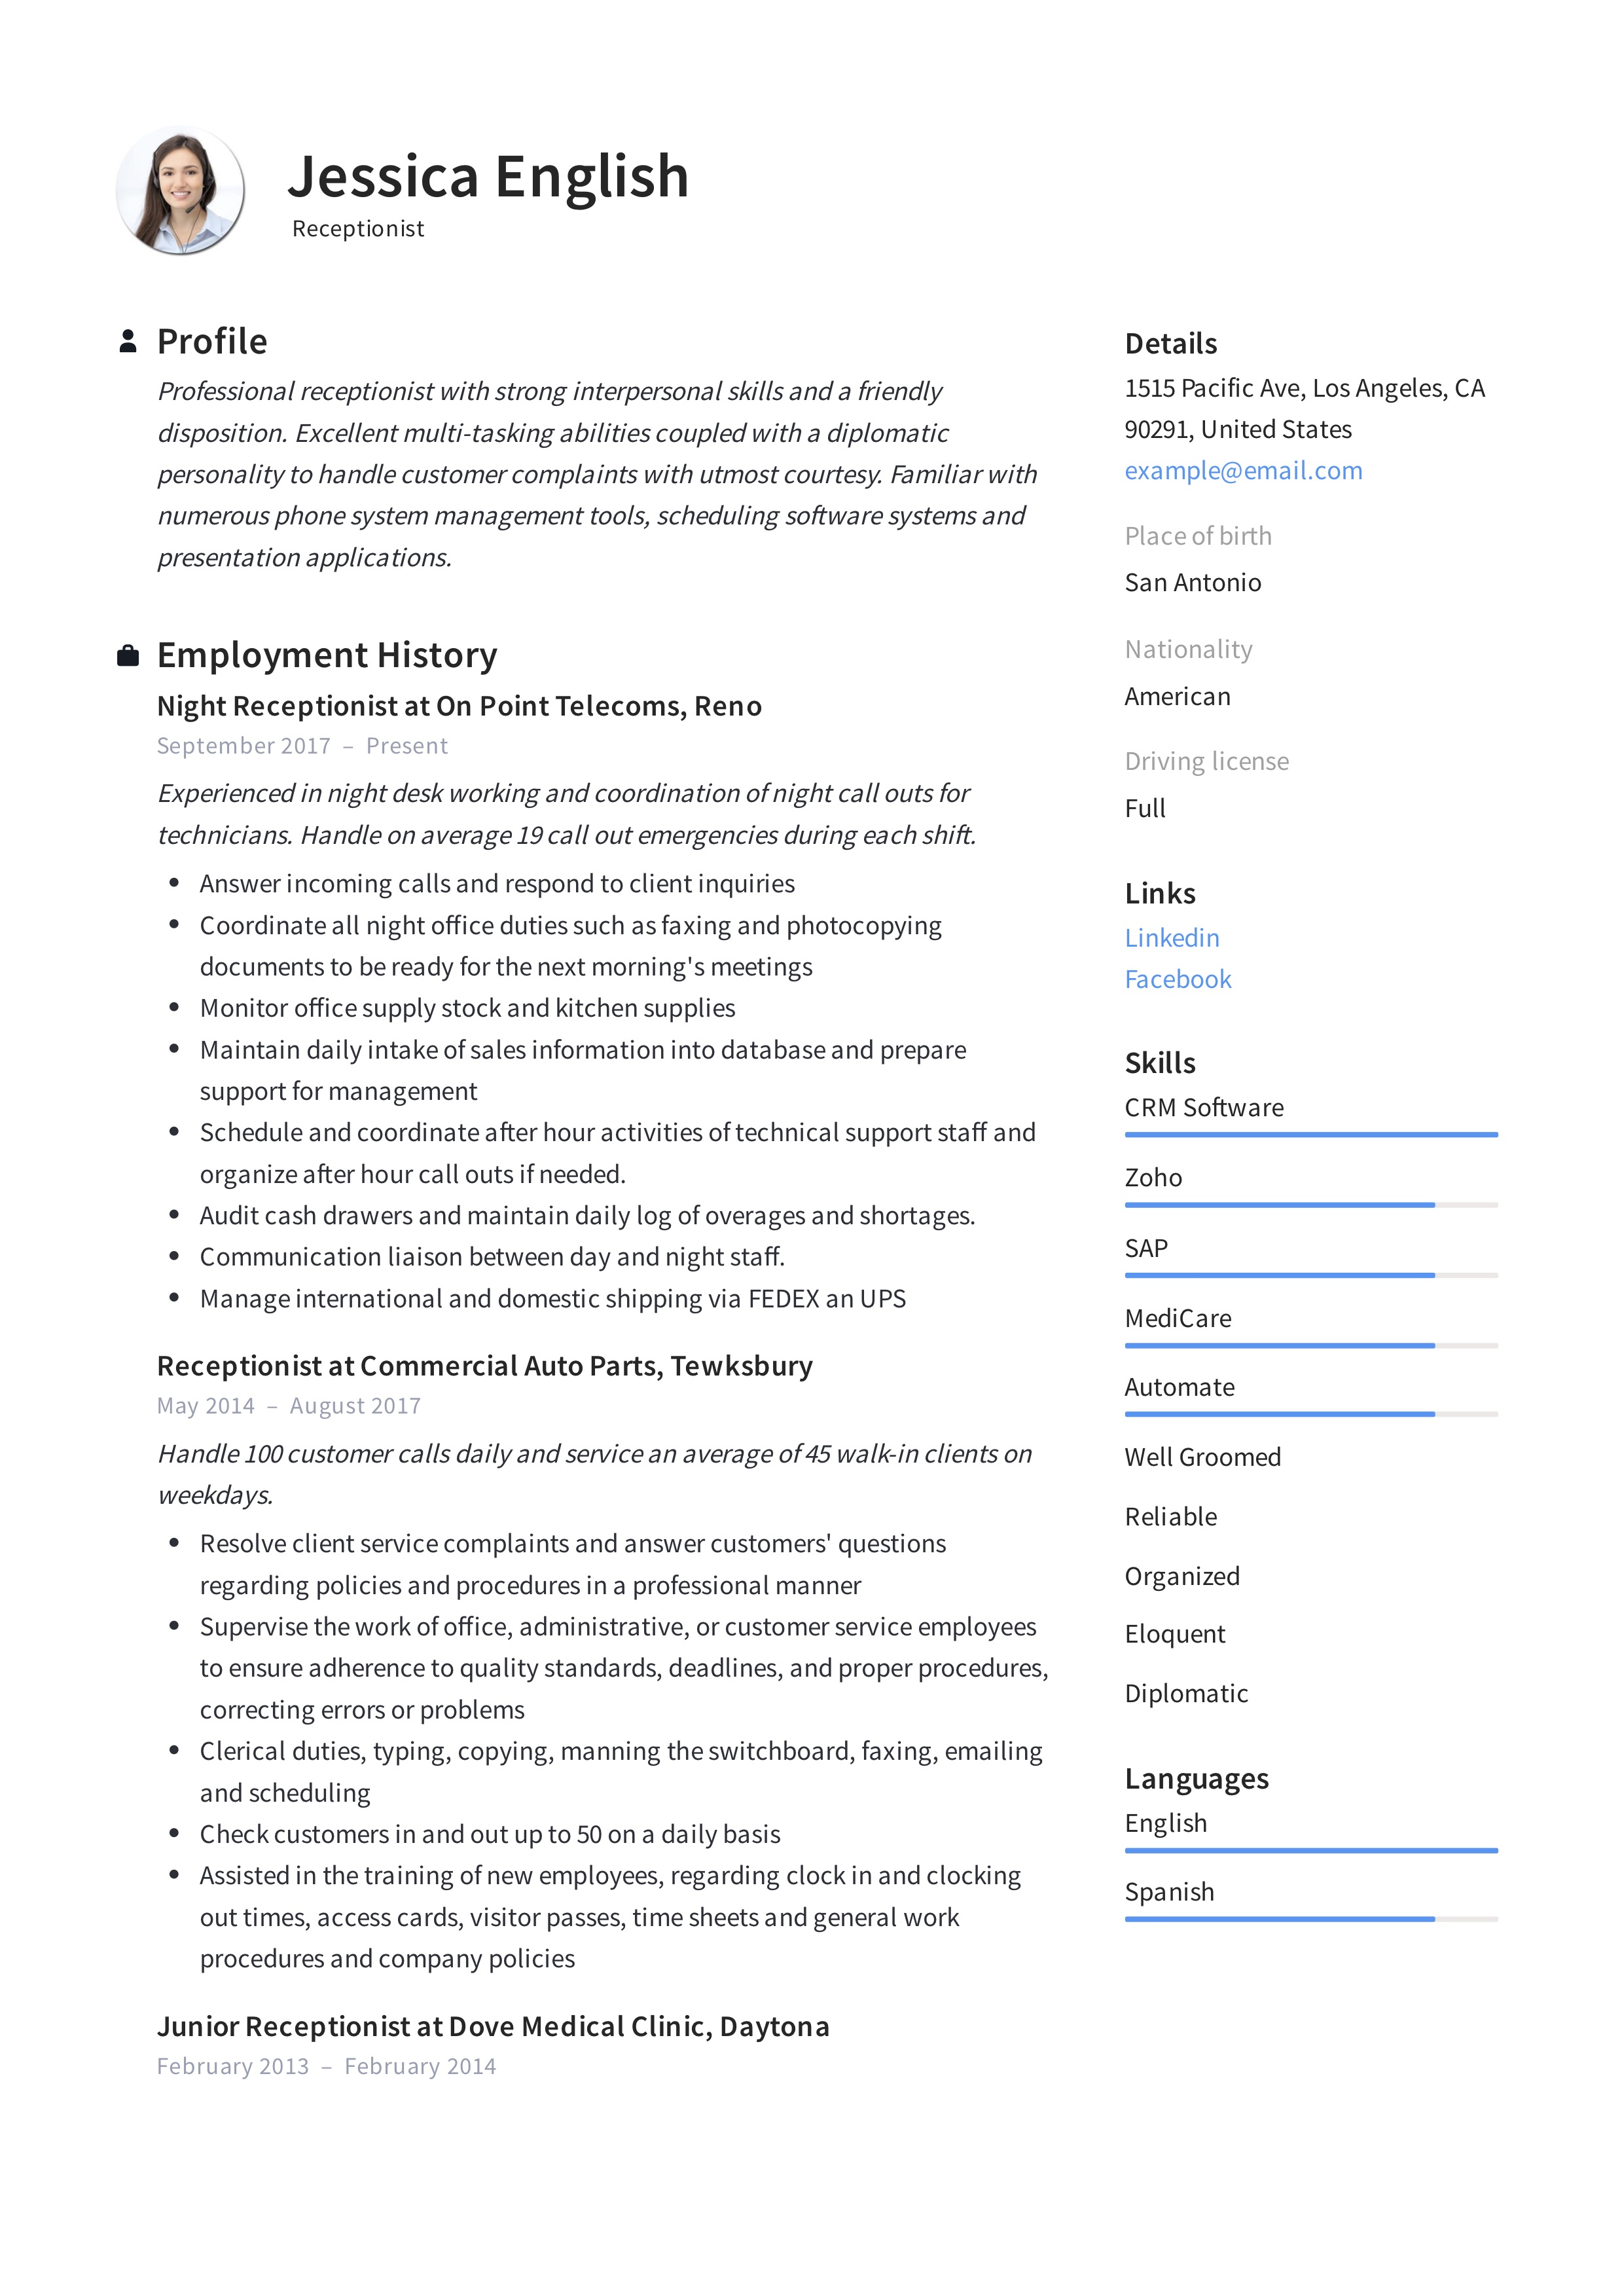 receptionist resume example writing guide samples pdf skills and abilities for jessica Resume Skills And Abilities For Receptionist Resume